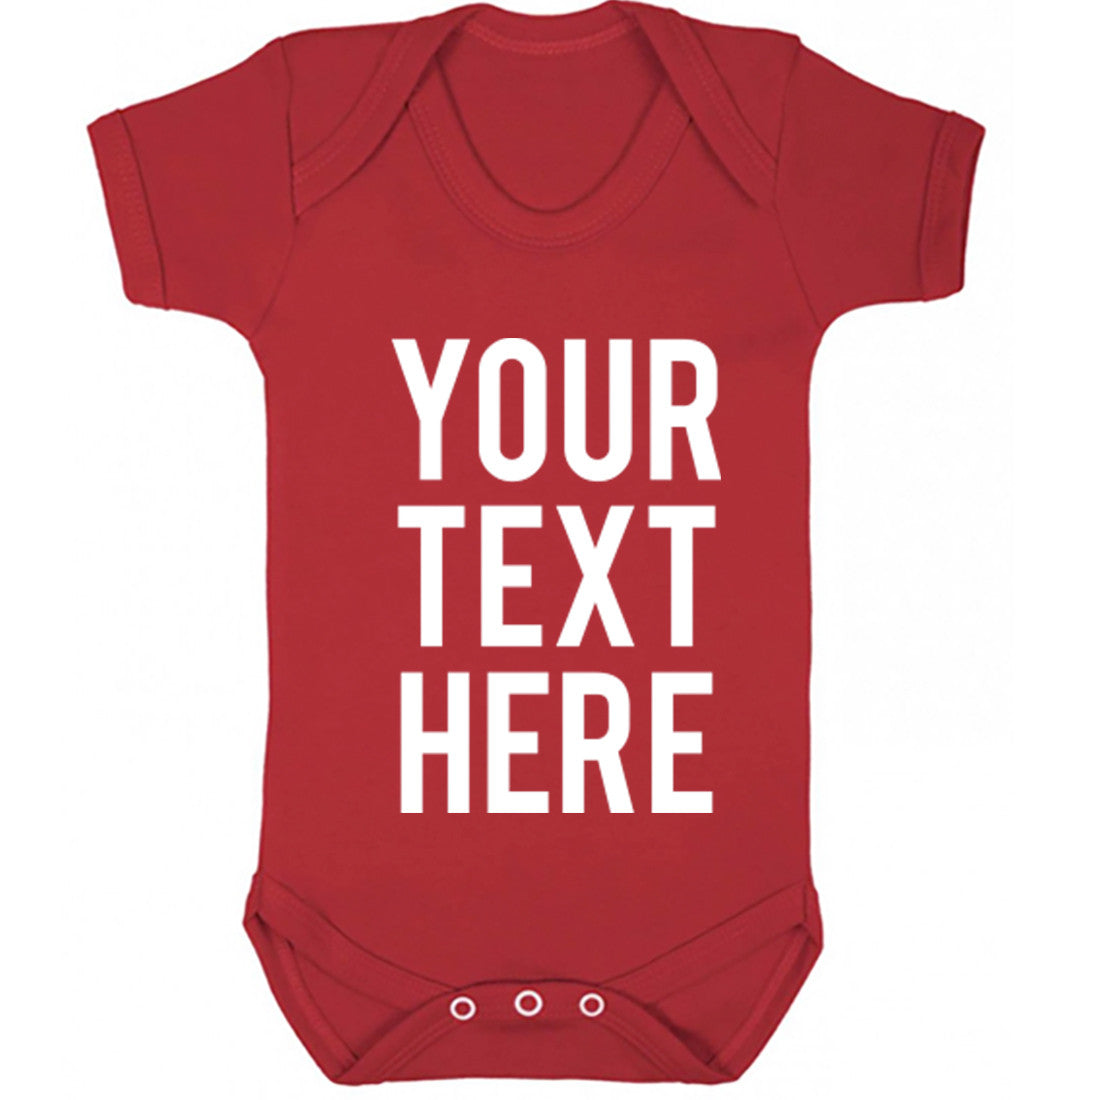 Your Text Here Baby Vest K0001